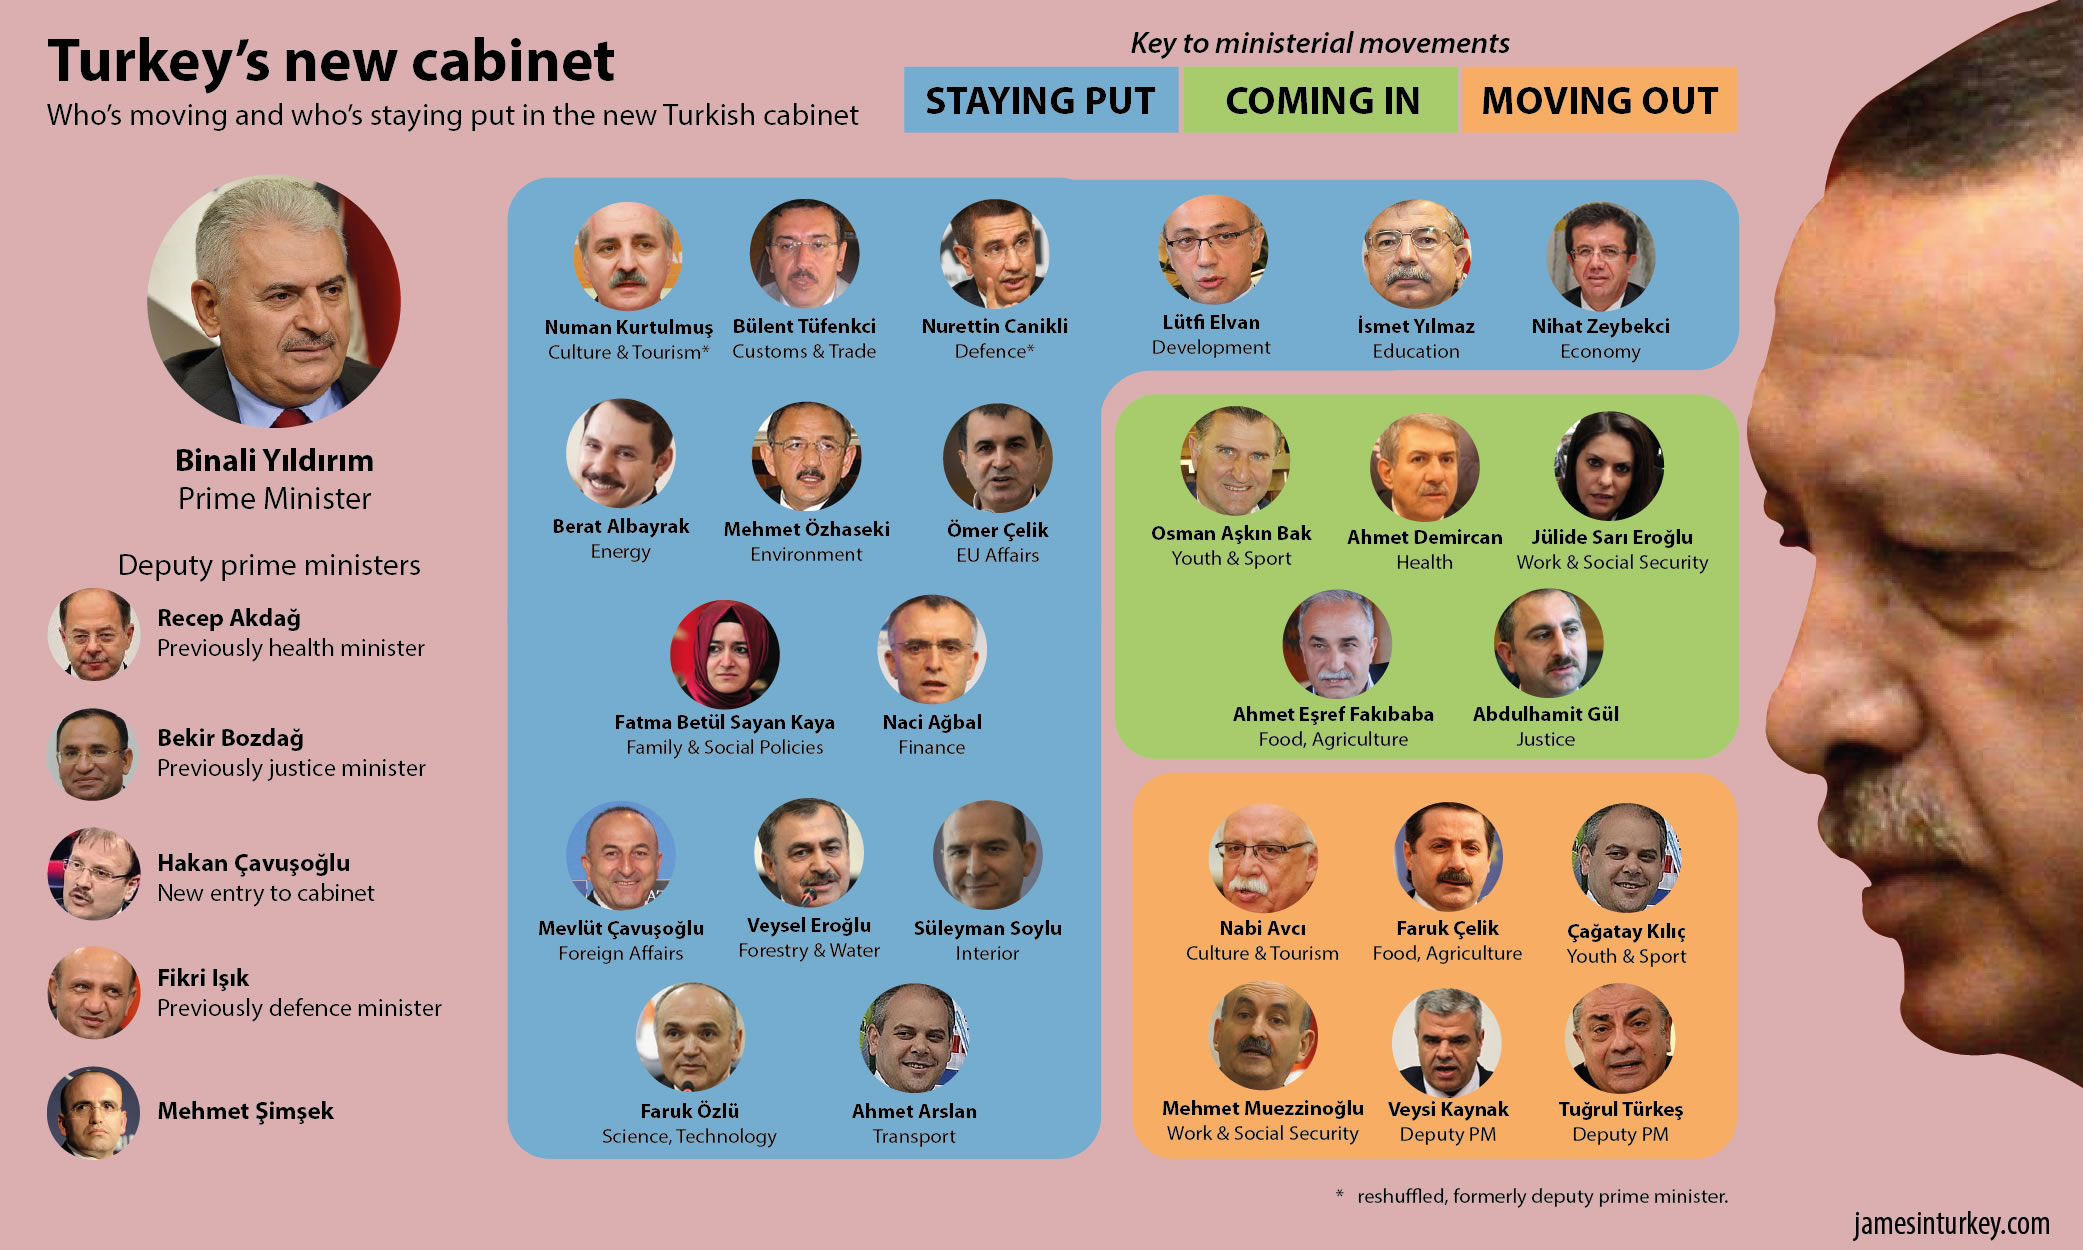 The 2017 cabinet reshuffle - James in Turkey